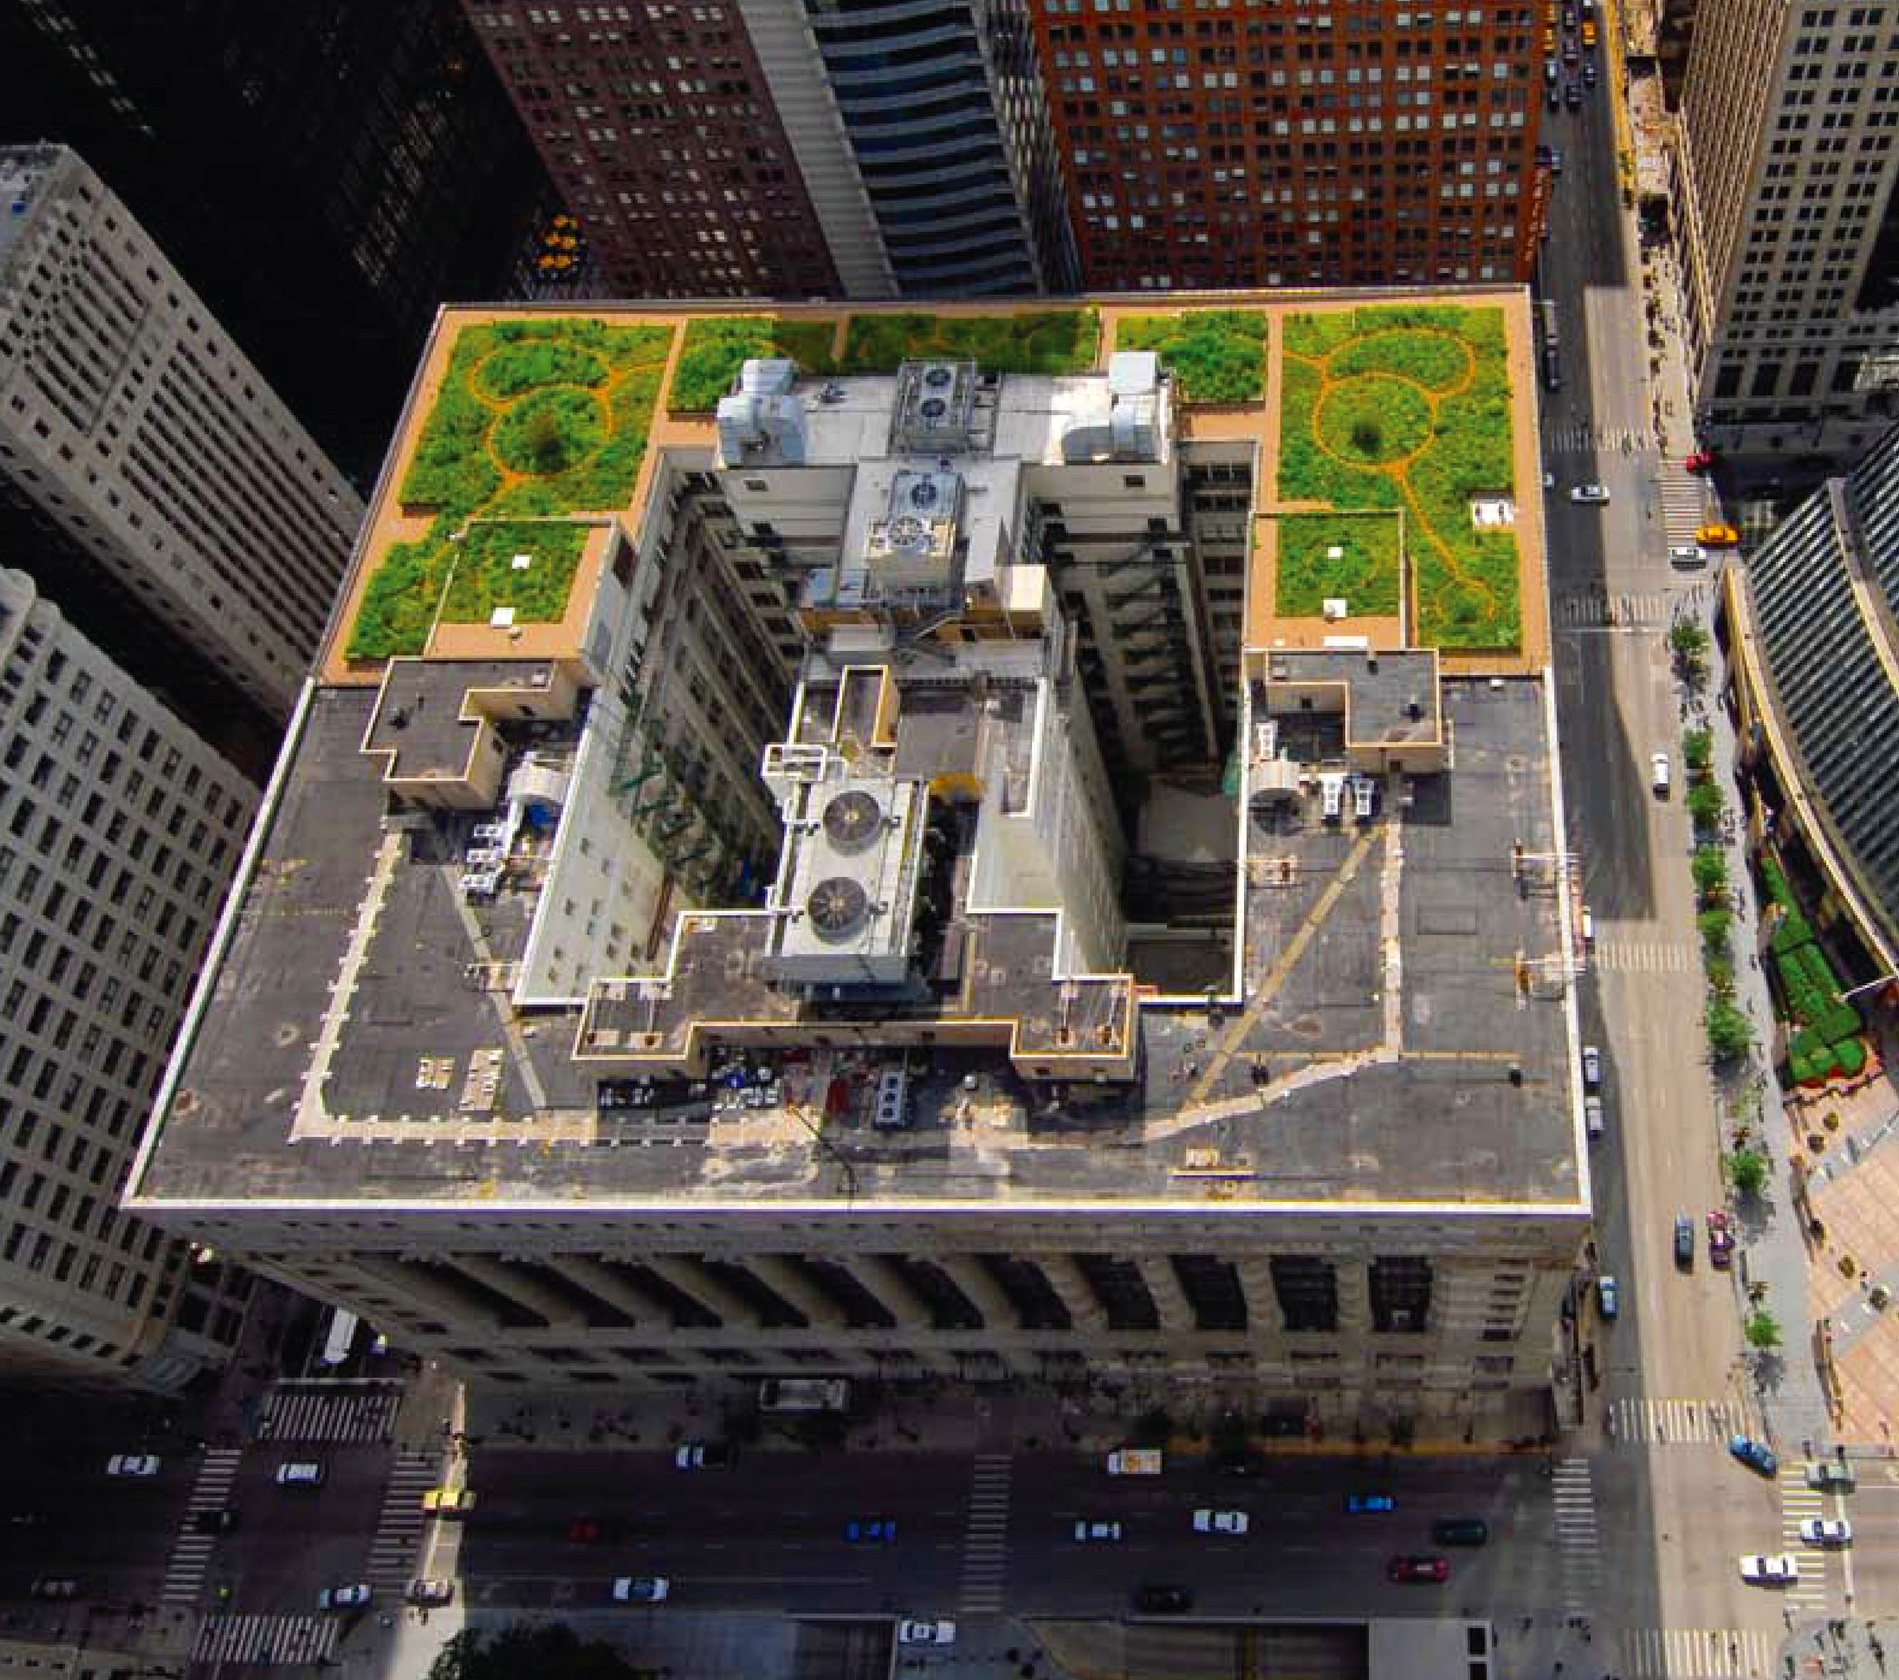 Chicago City Hall's green roof — temperature differences between the vegetated and non-vegetated claimed to be as much as 70°